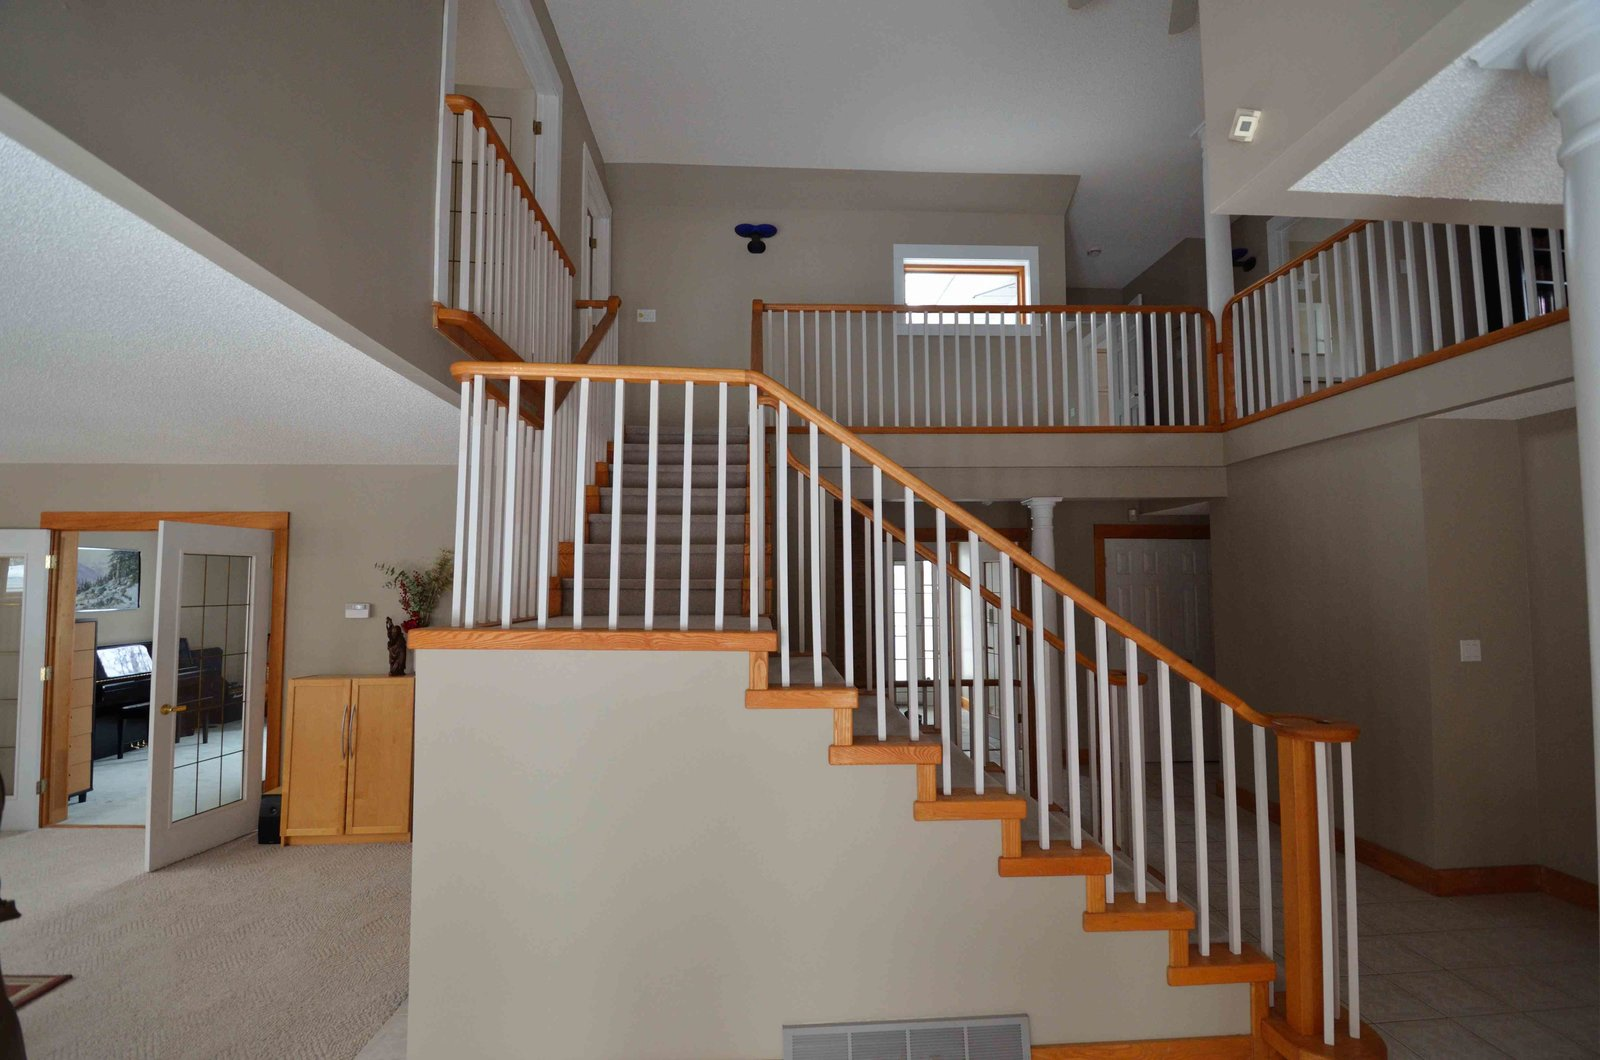 Staircase Existing Stair before re-model  Crestwood Re-Model by Mindy Gudzinski Design